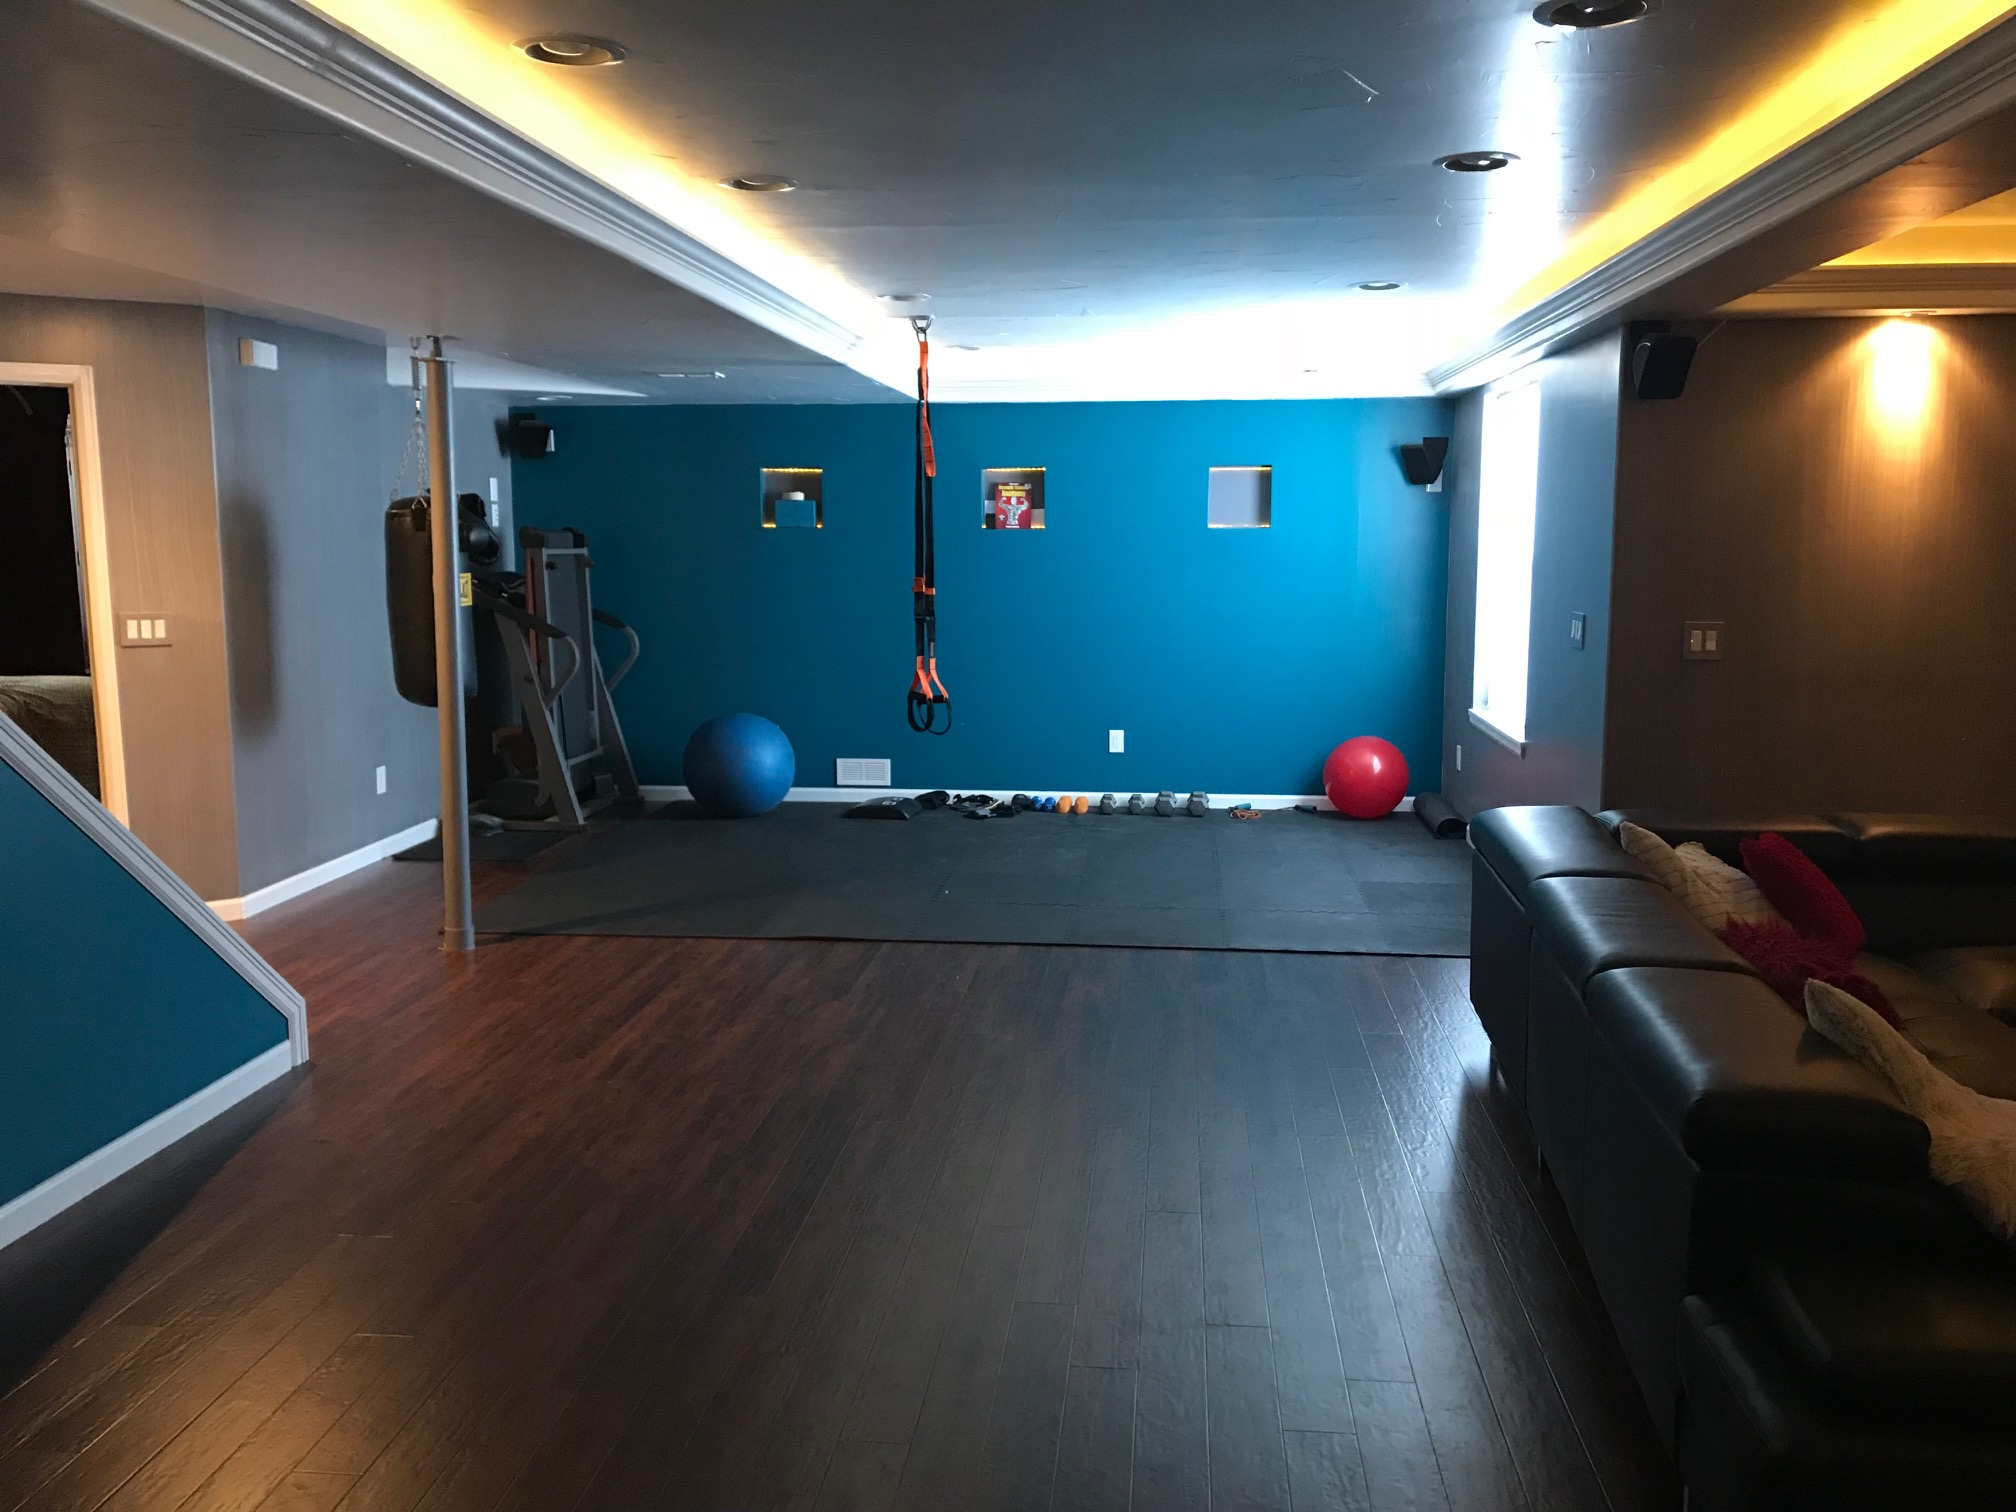 We left the rest open to entertain guests for parties and watch movies. There is a foosball table, long bar for projects, electronic dart board, micro sized ping pong, cupboard full of board games, a punching bag, a fitness pole and hanging bands, a giant balance ball and a stairway without a railing for sliding down.